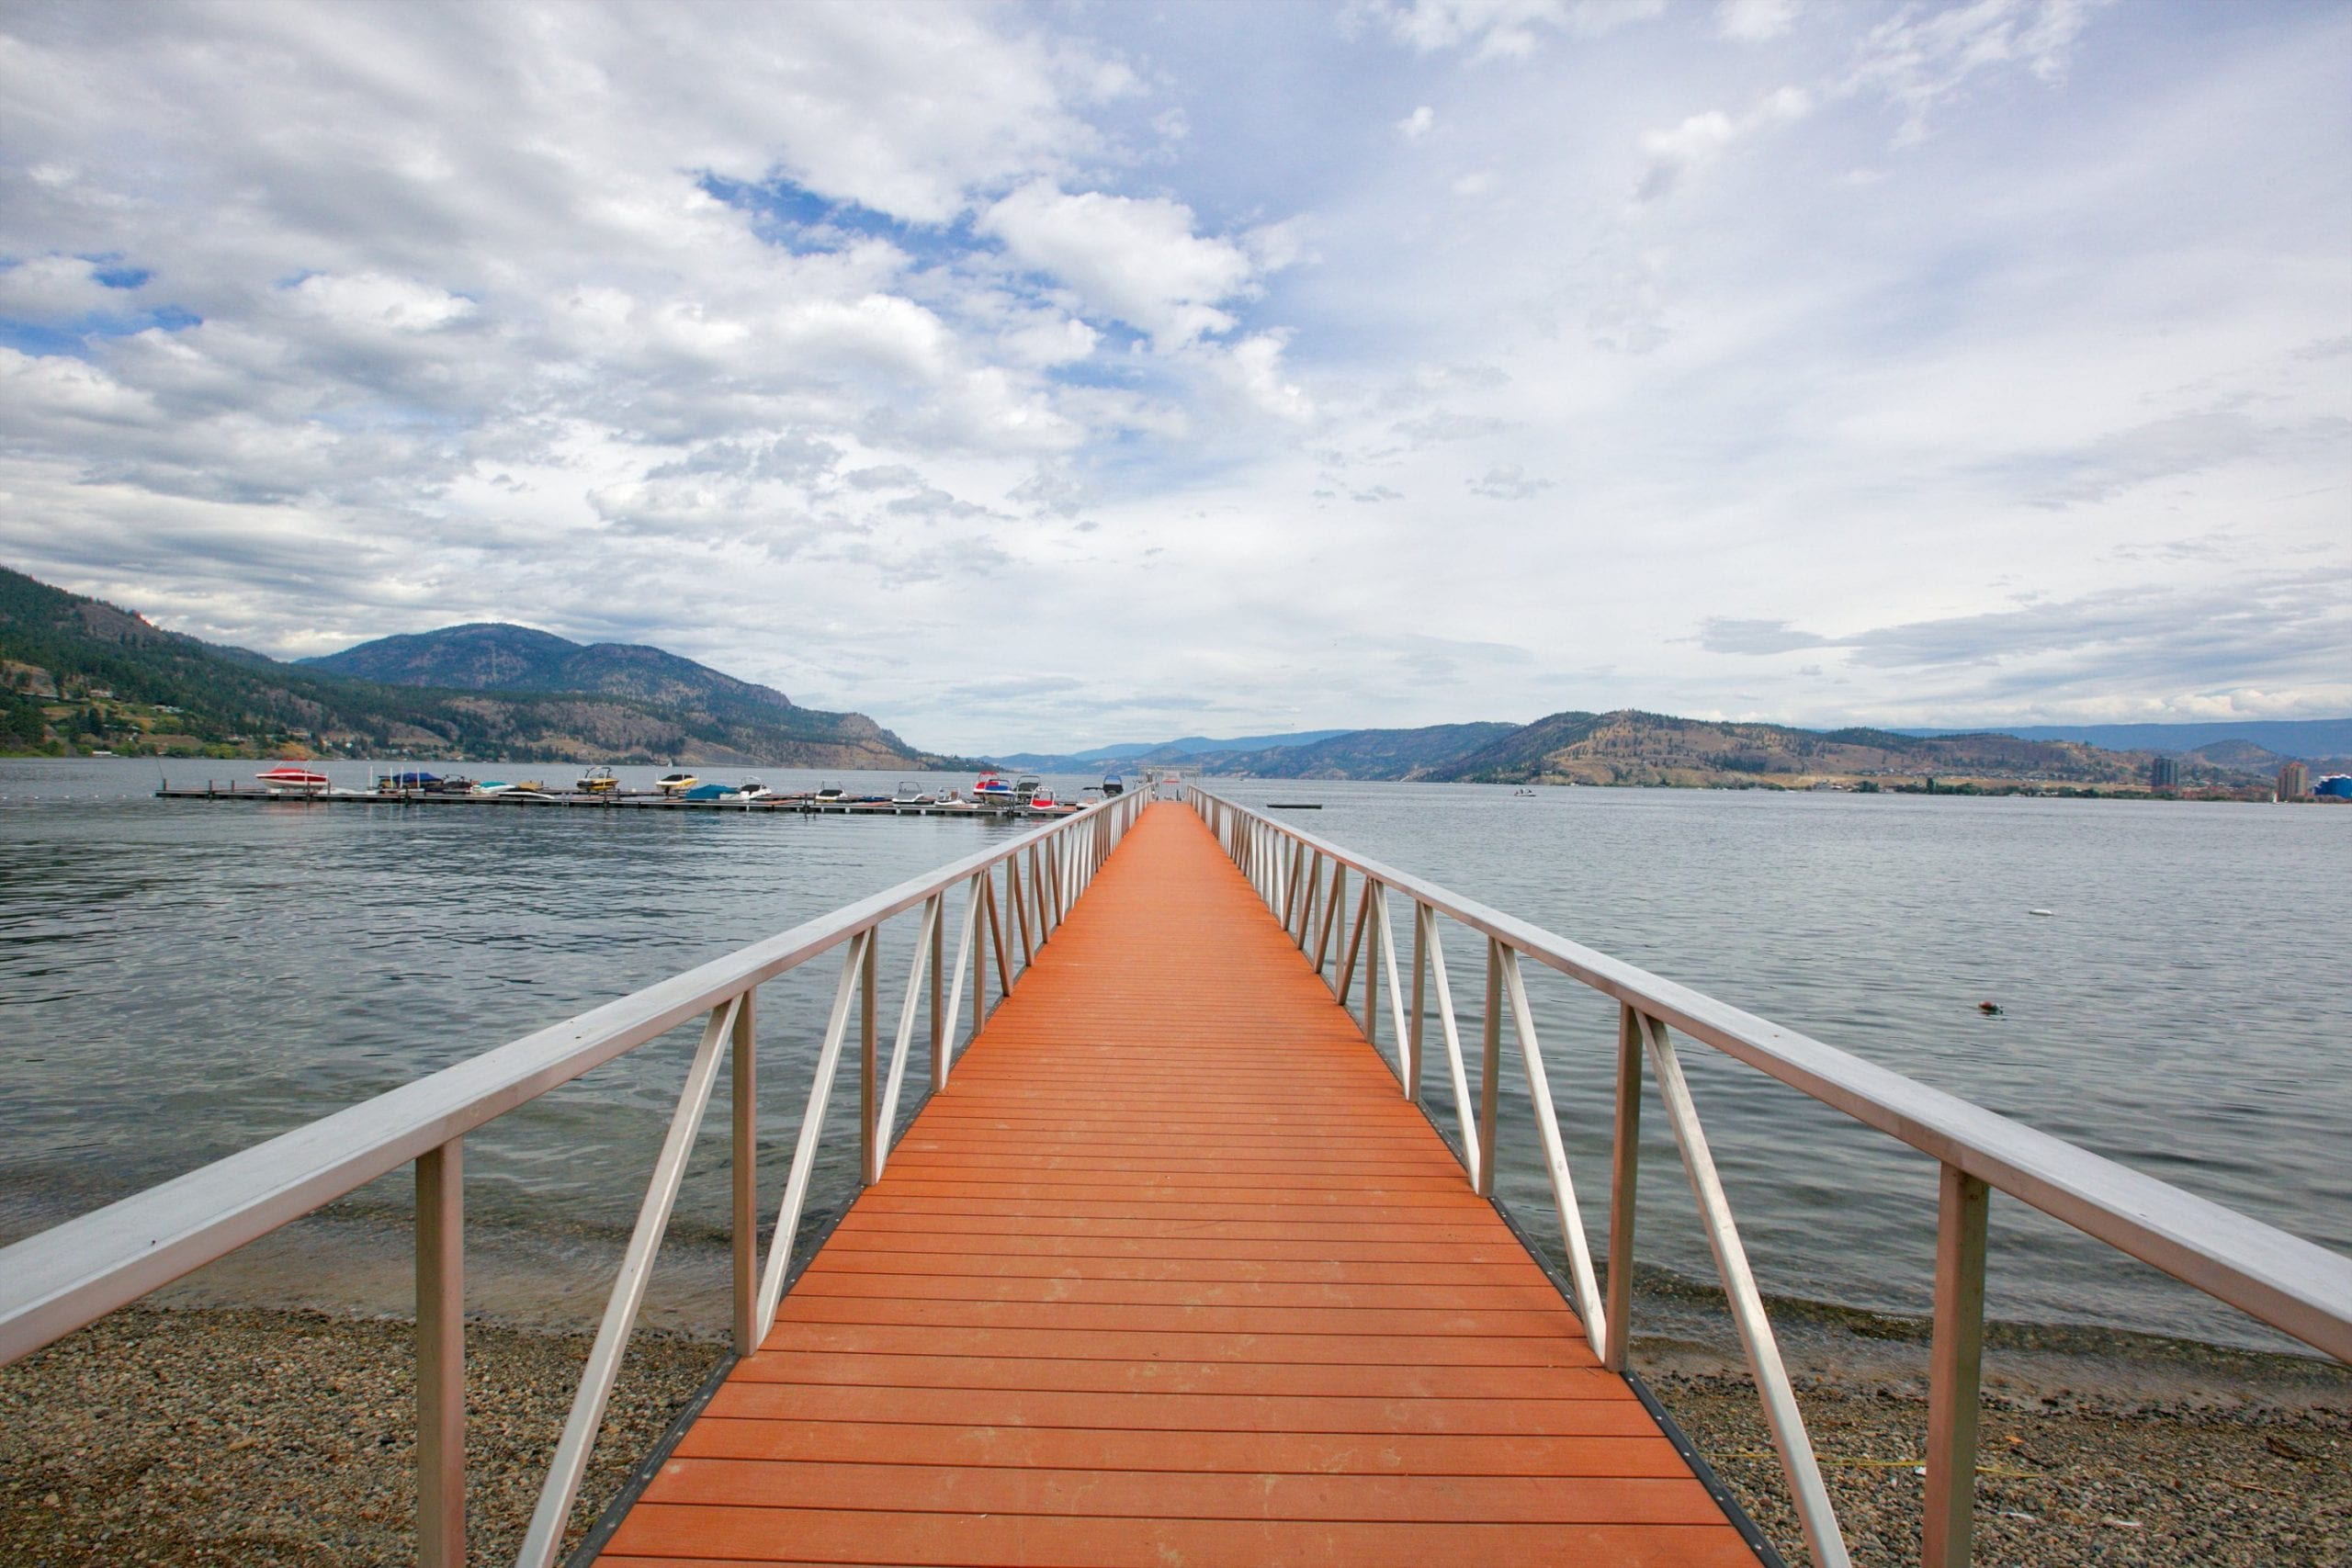 walkway shot staring directly at the marina on the okanagan lake with multiple boats parked